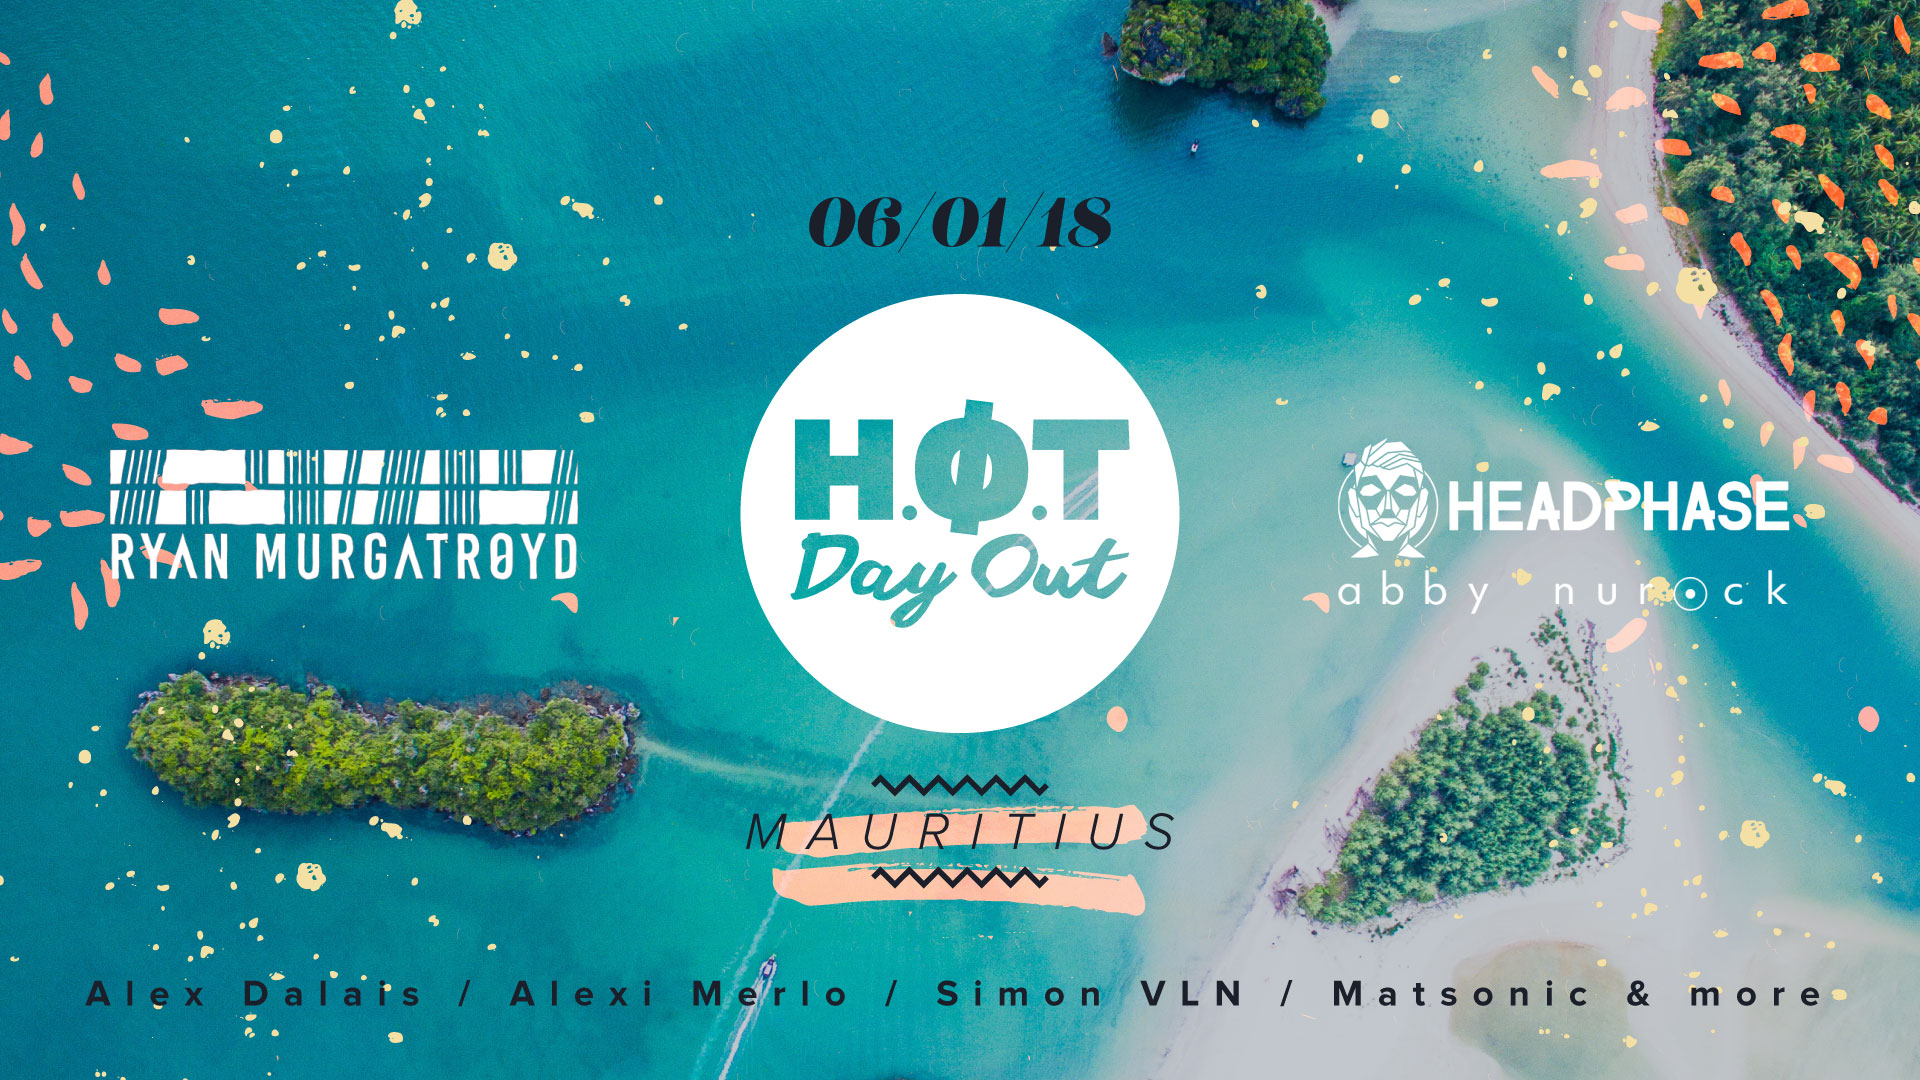 HOTDayOutMauritius-FB-event